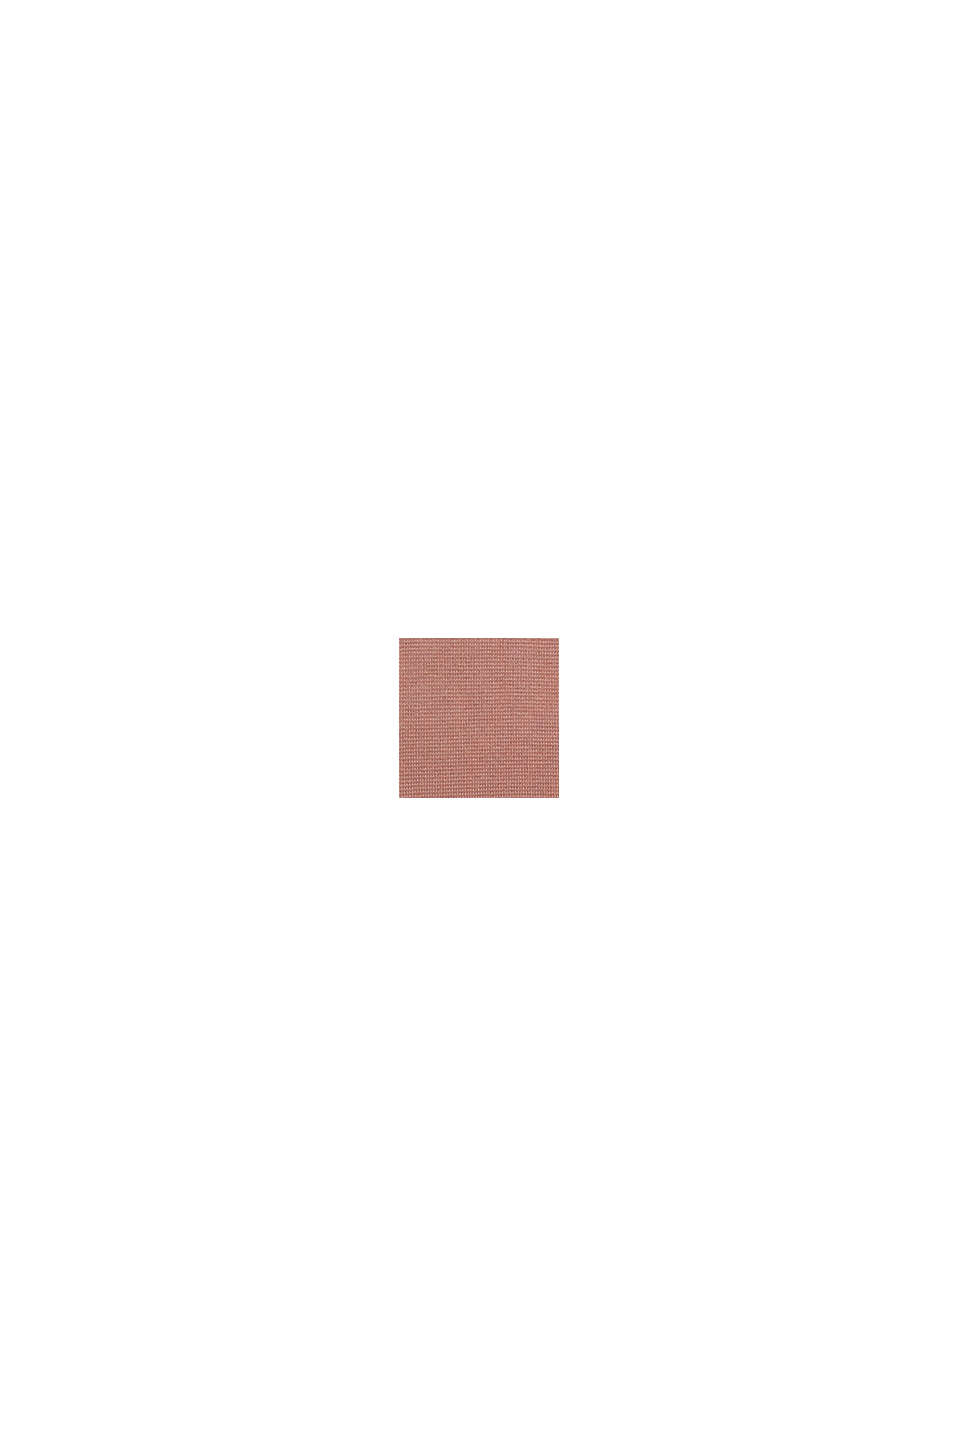 Earthcolors®: Baumwoll-Pullover, BLUSH, swatch